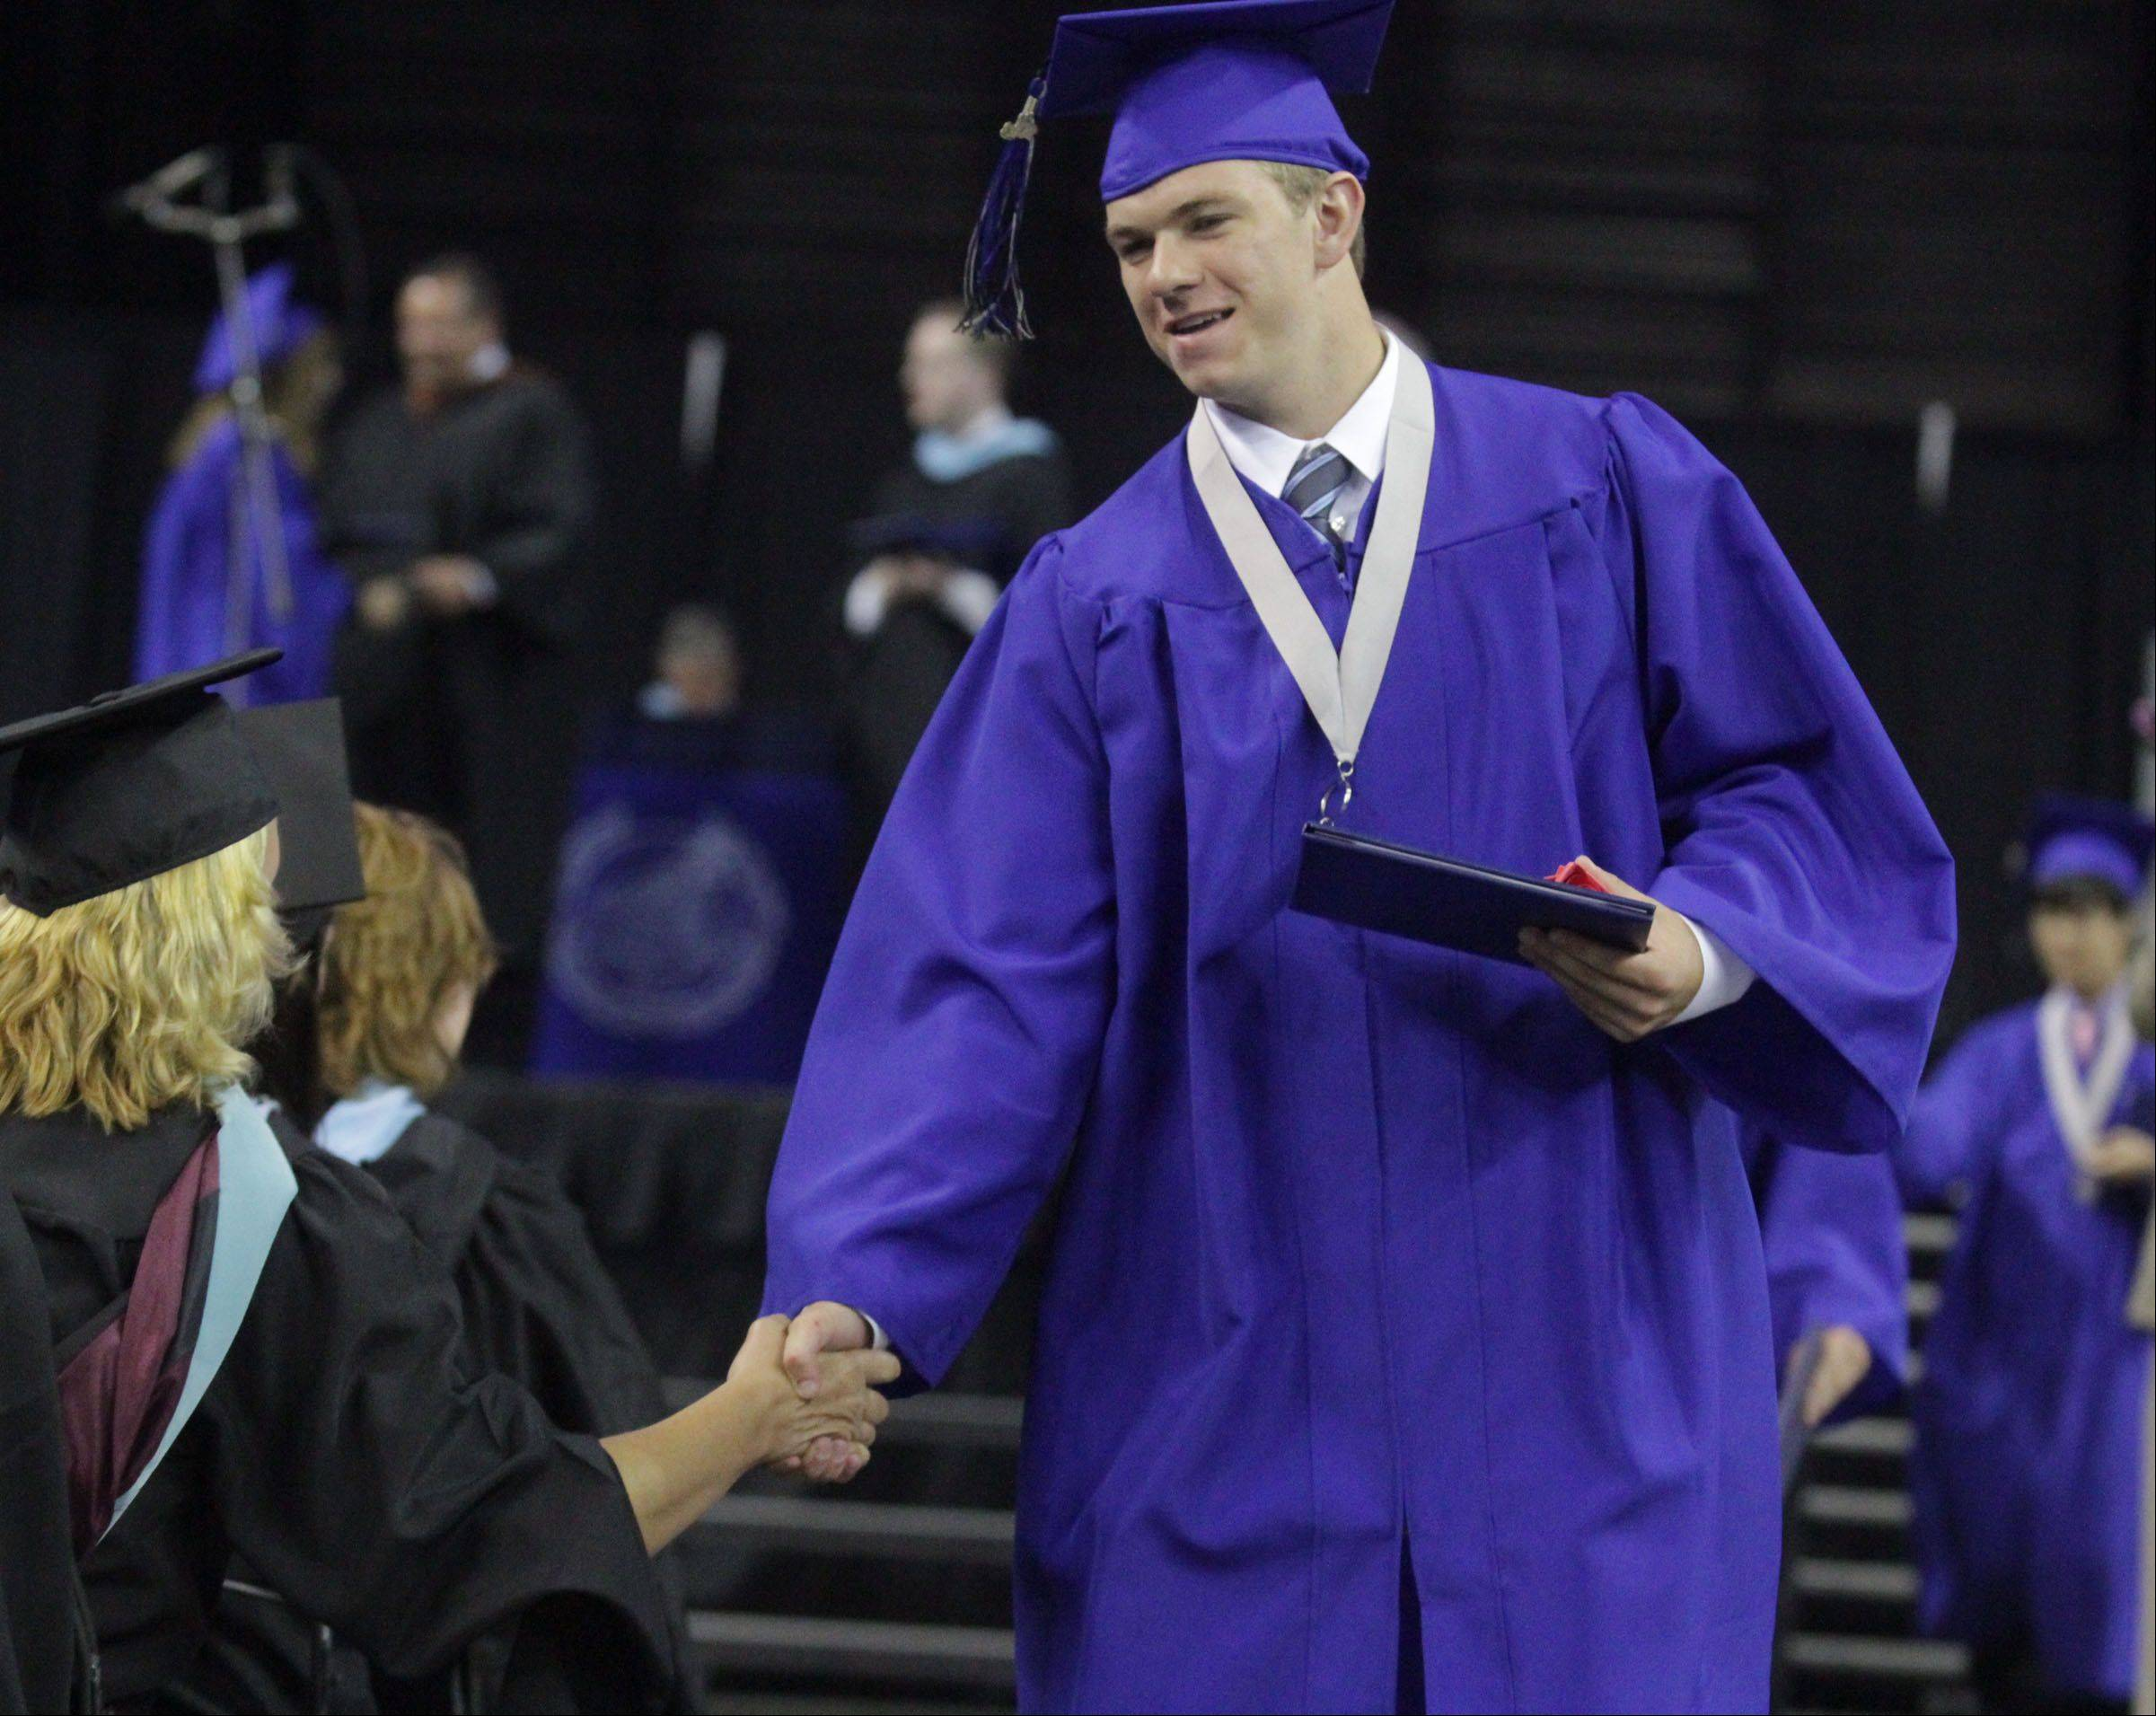 Images from the St Charles North High School commencement ceremony Sunday, May 26, 2013 at the Sears Centre in Hoffman Estates.